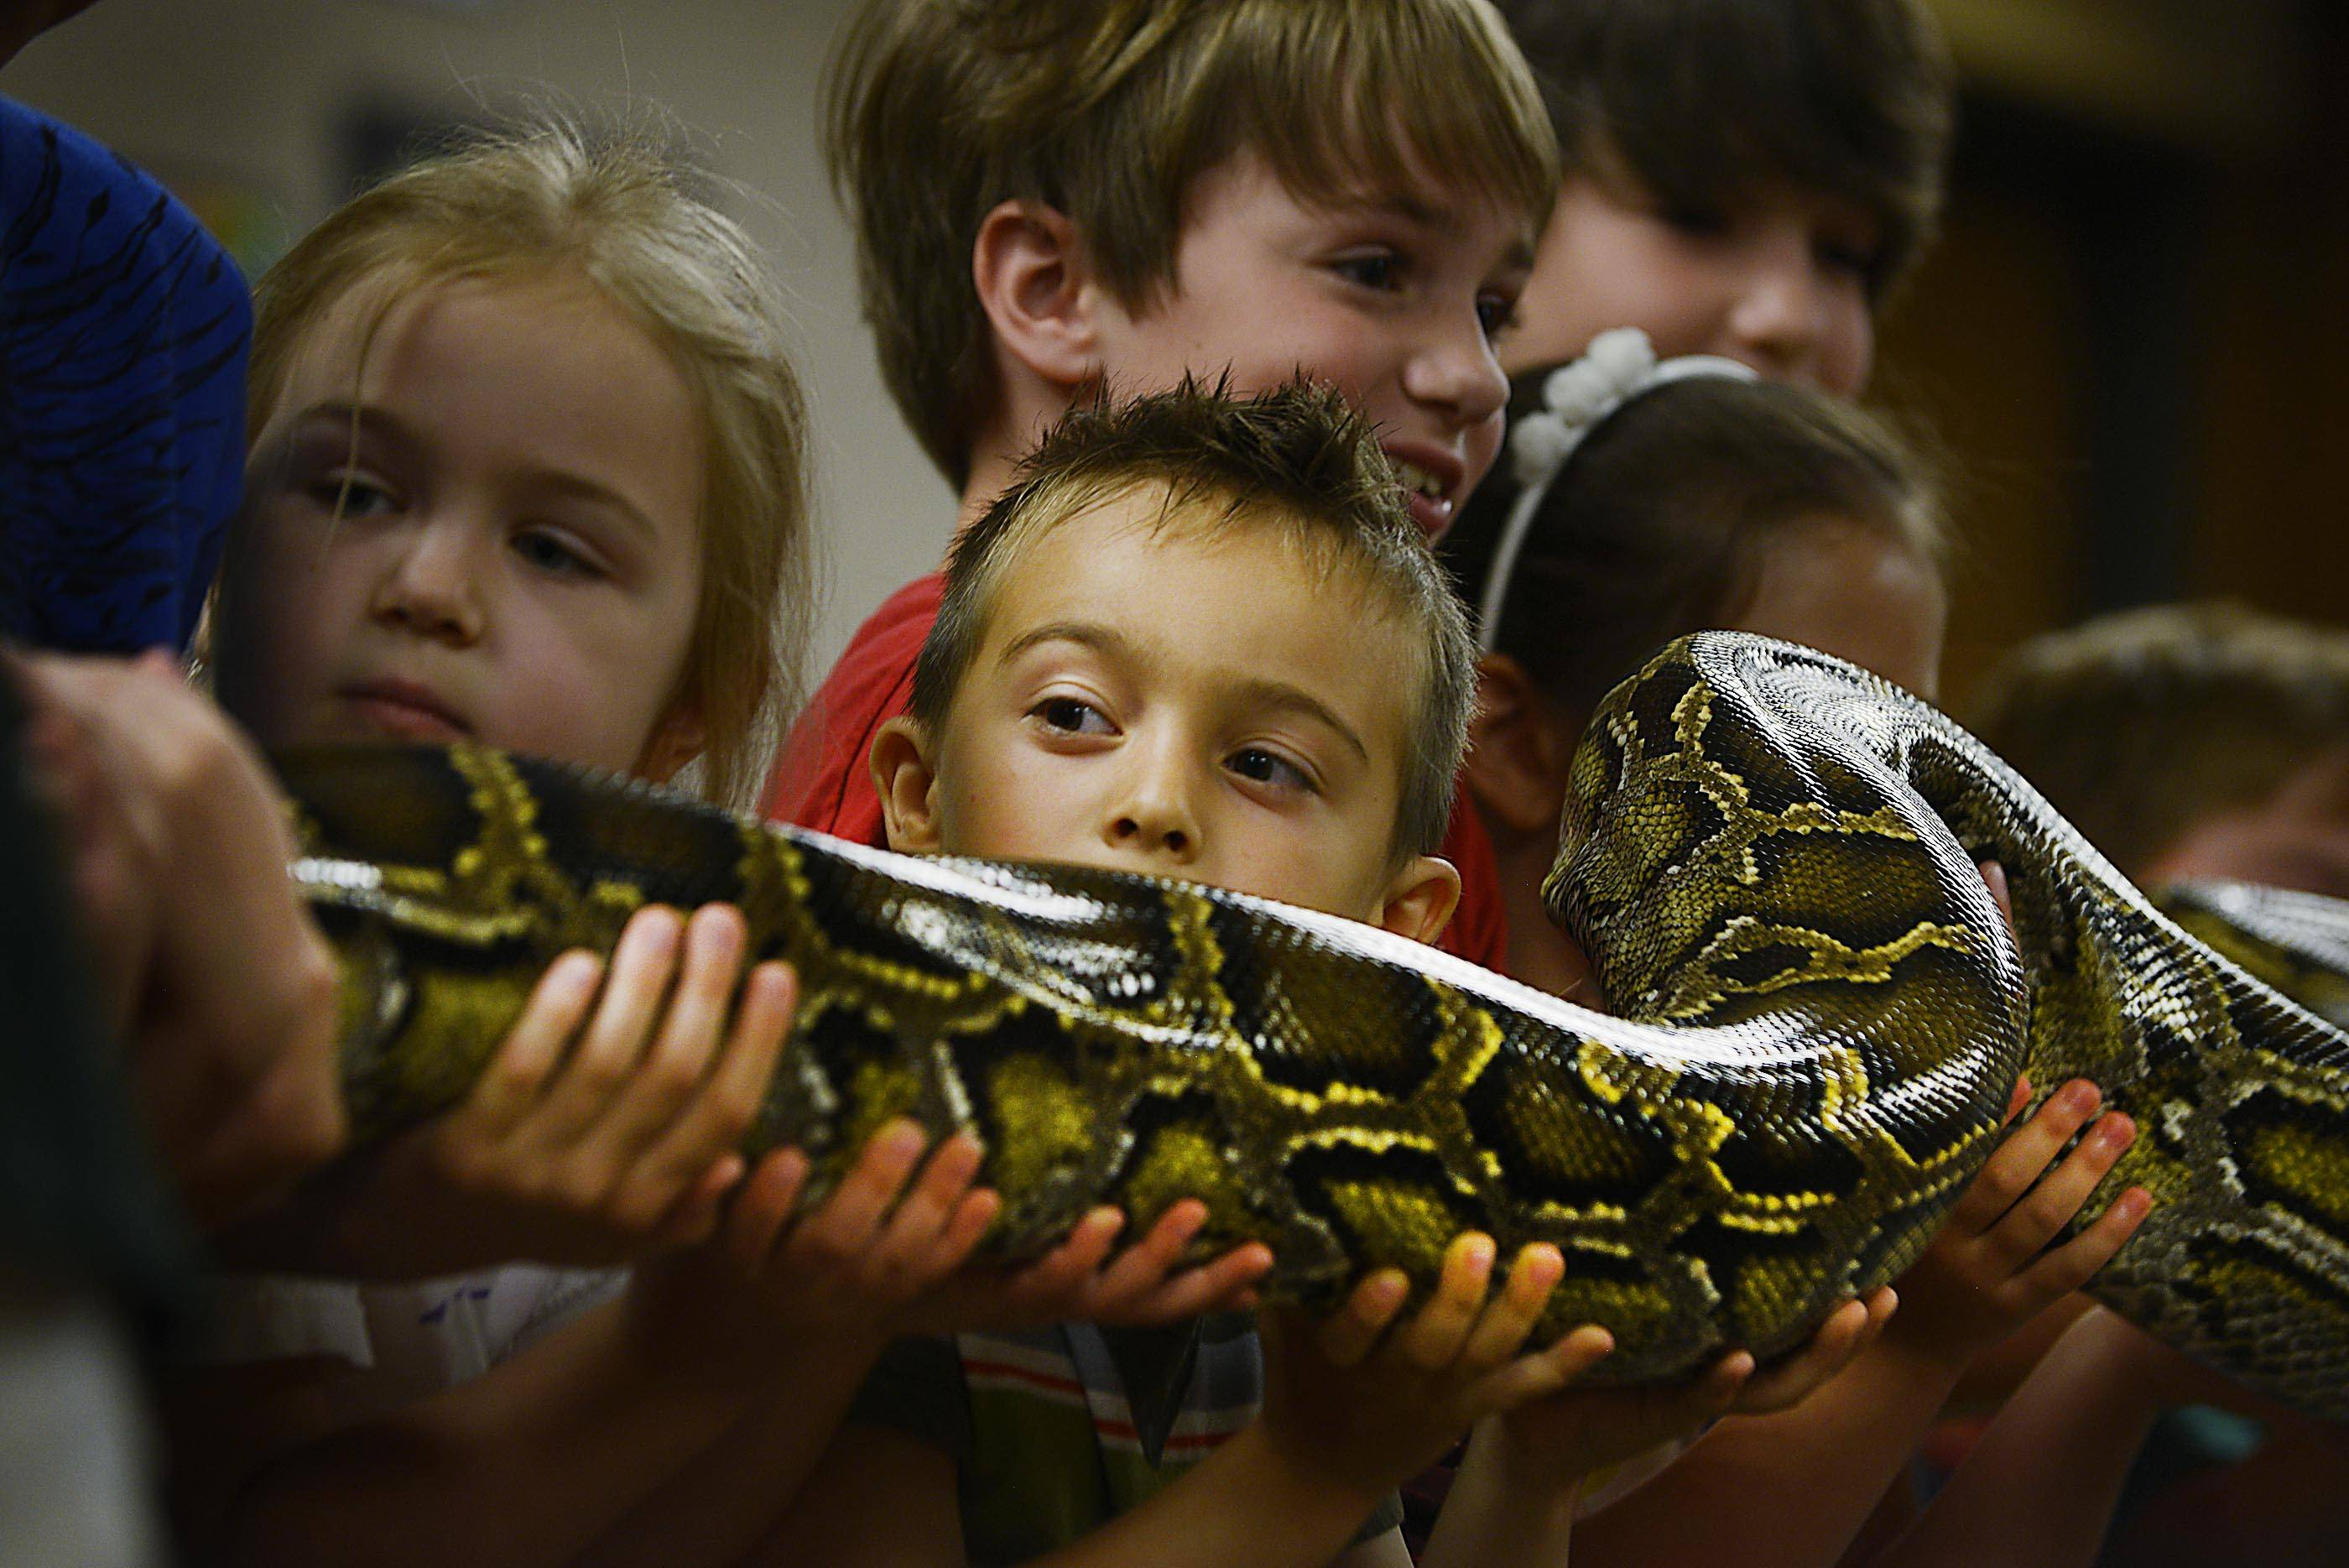 Nathan Leslie, 5, of St. Charles holds a Burmese Python with several other children Monday during a program by Dave DiNaso's Traveling World of Reptiles at the St. Charles Public Library.